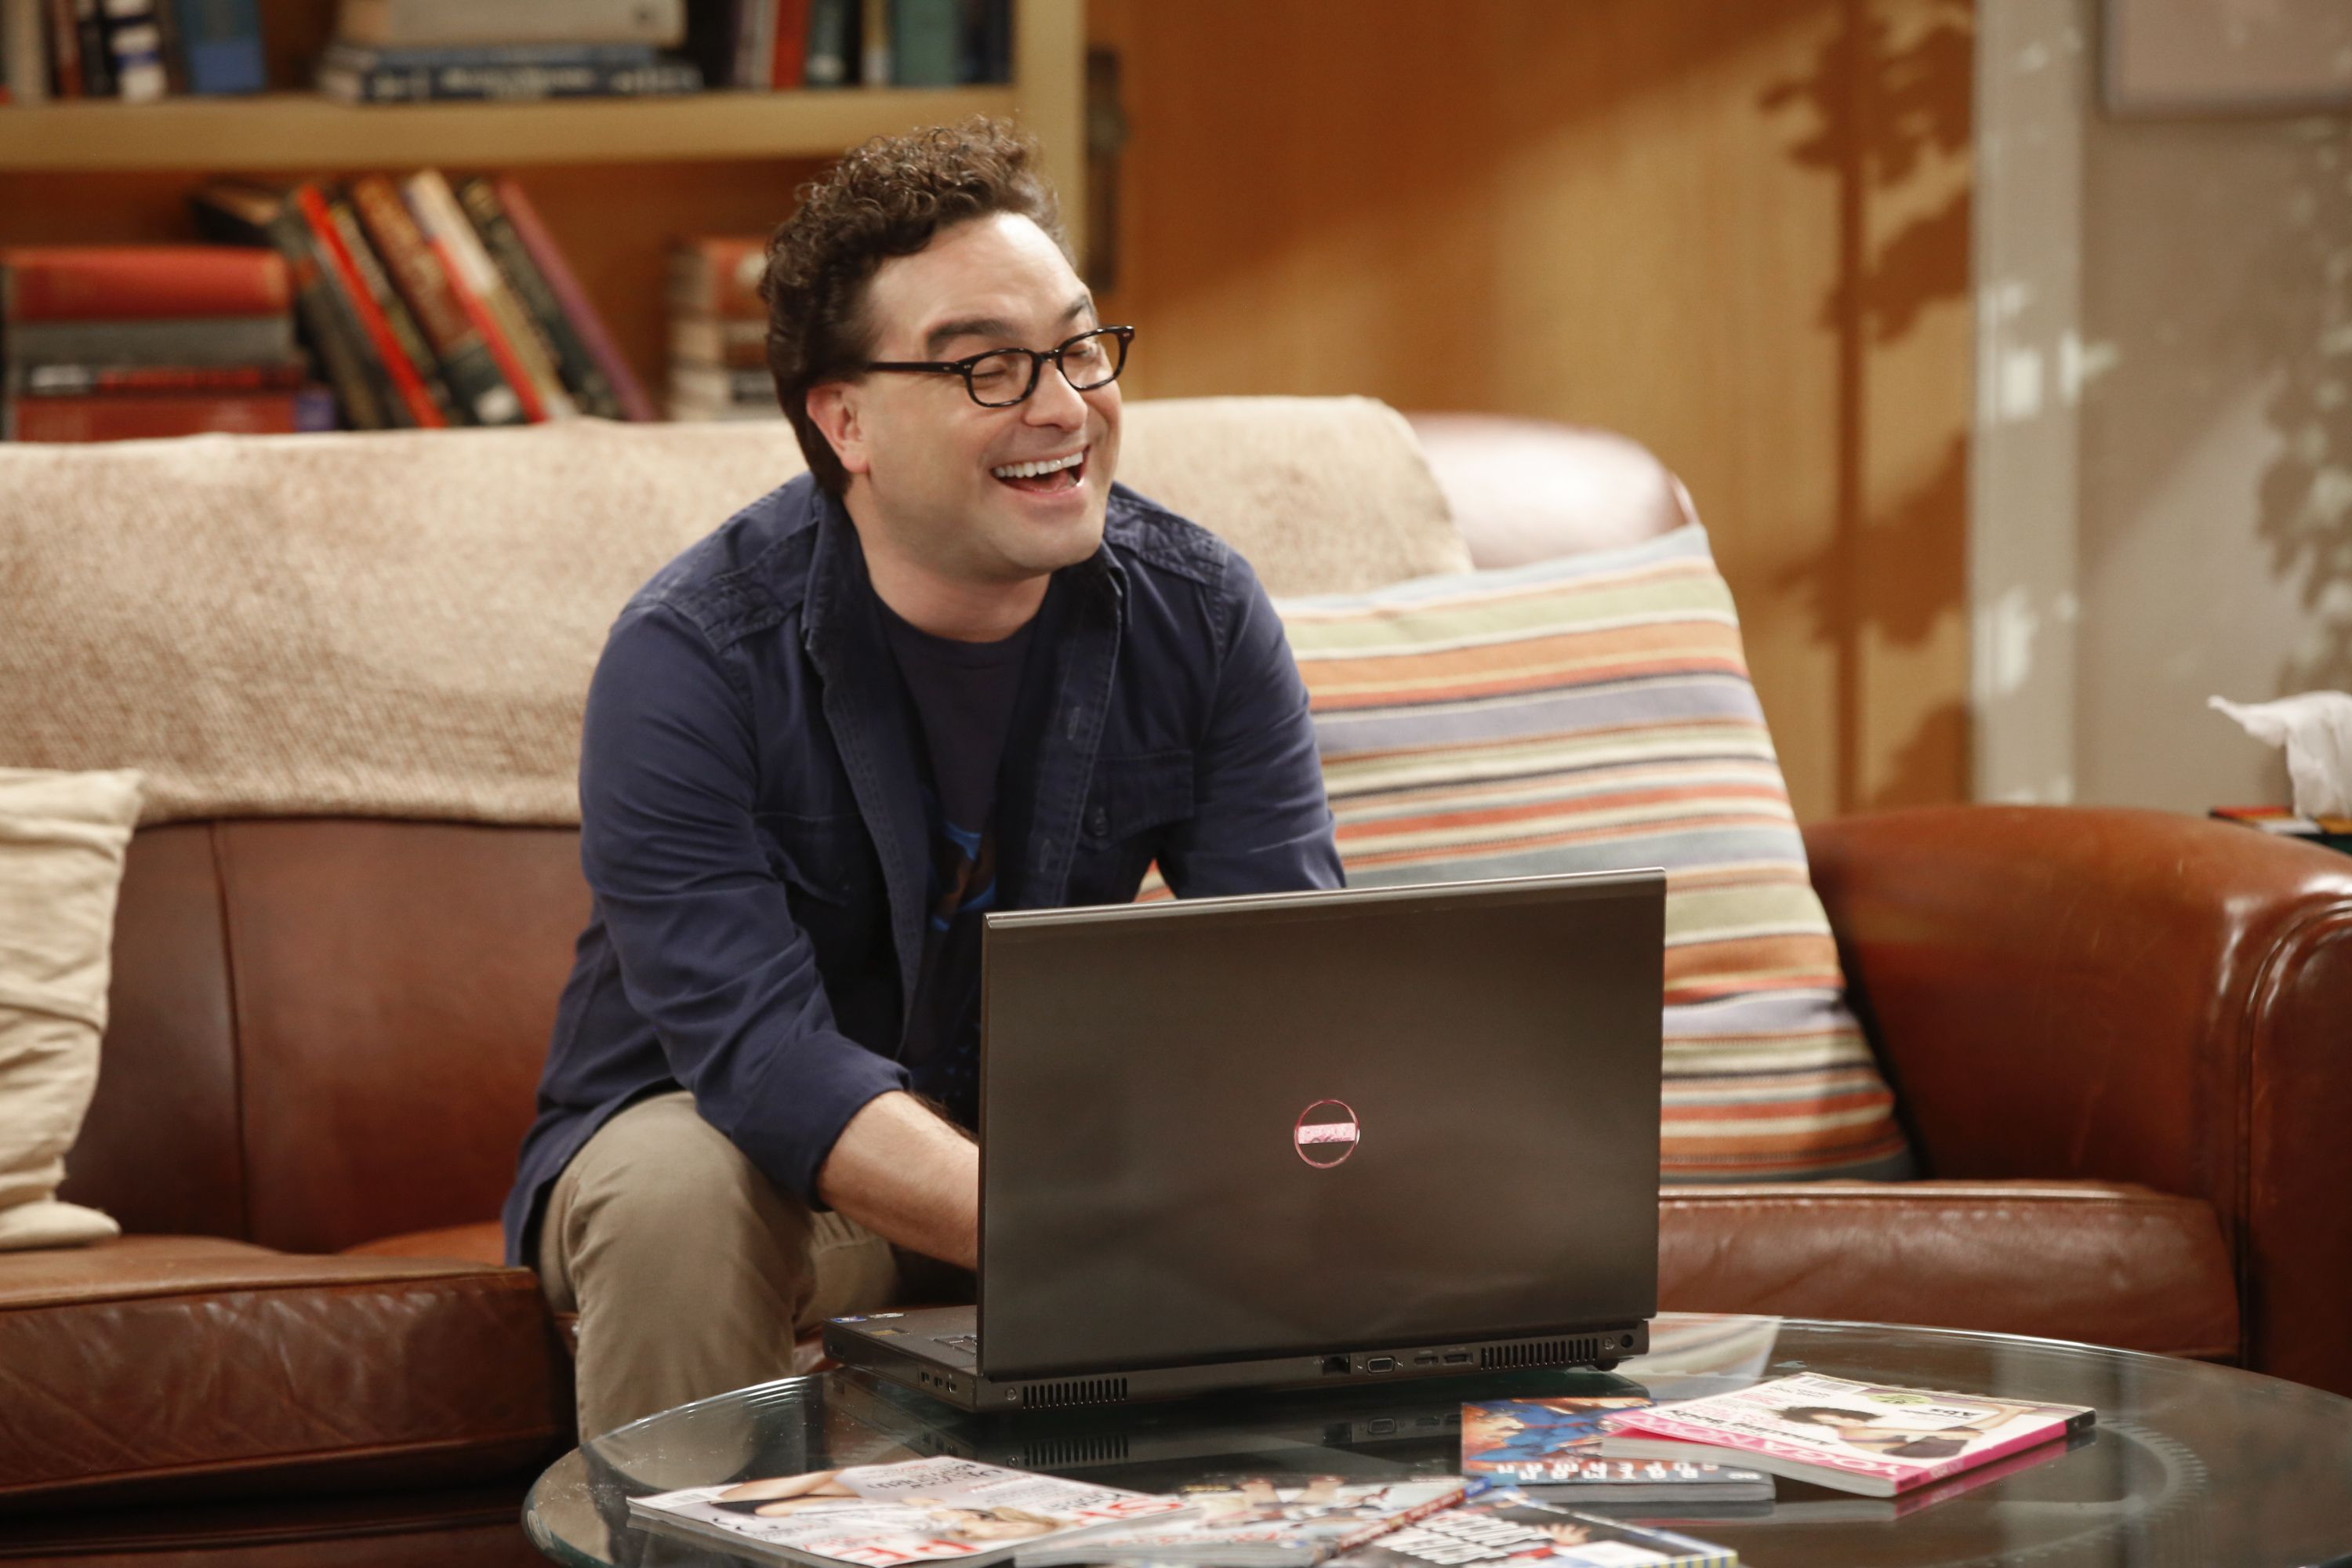 Big Bang Theory's Johnny Galecki shares emotional behind the scenes footage from show's final season